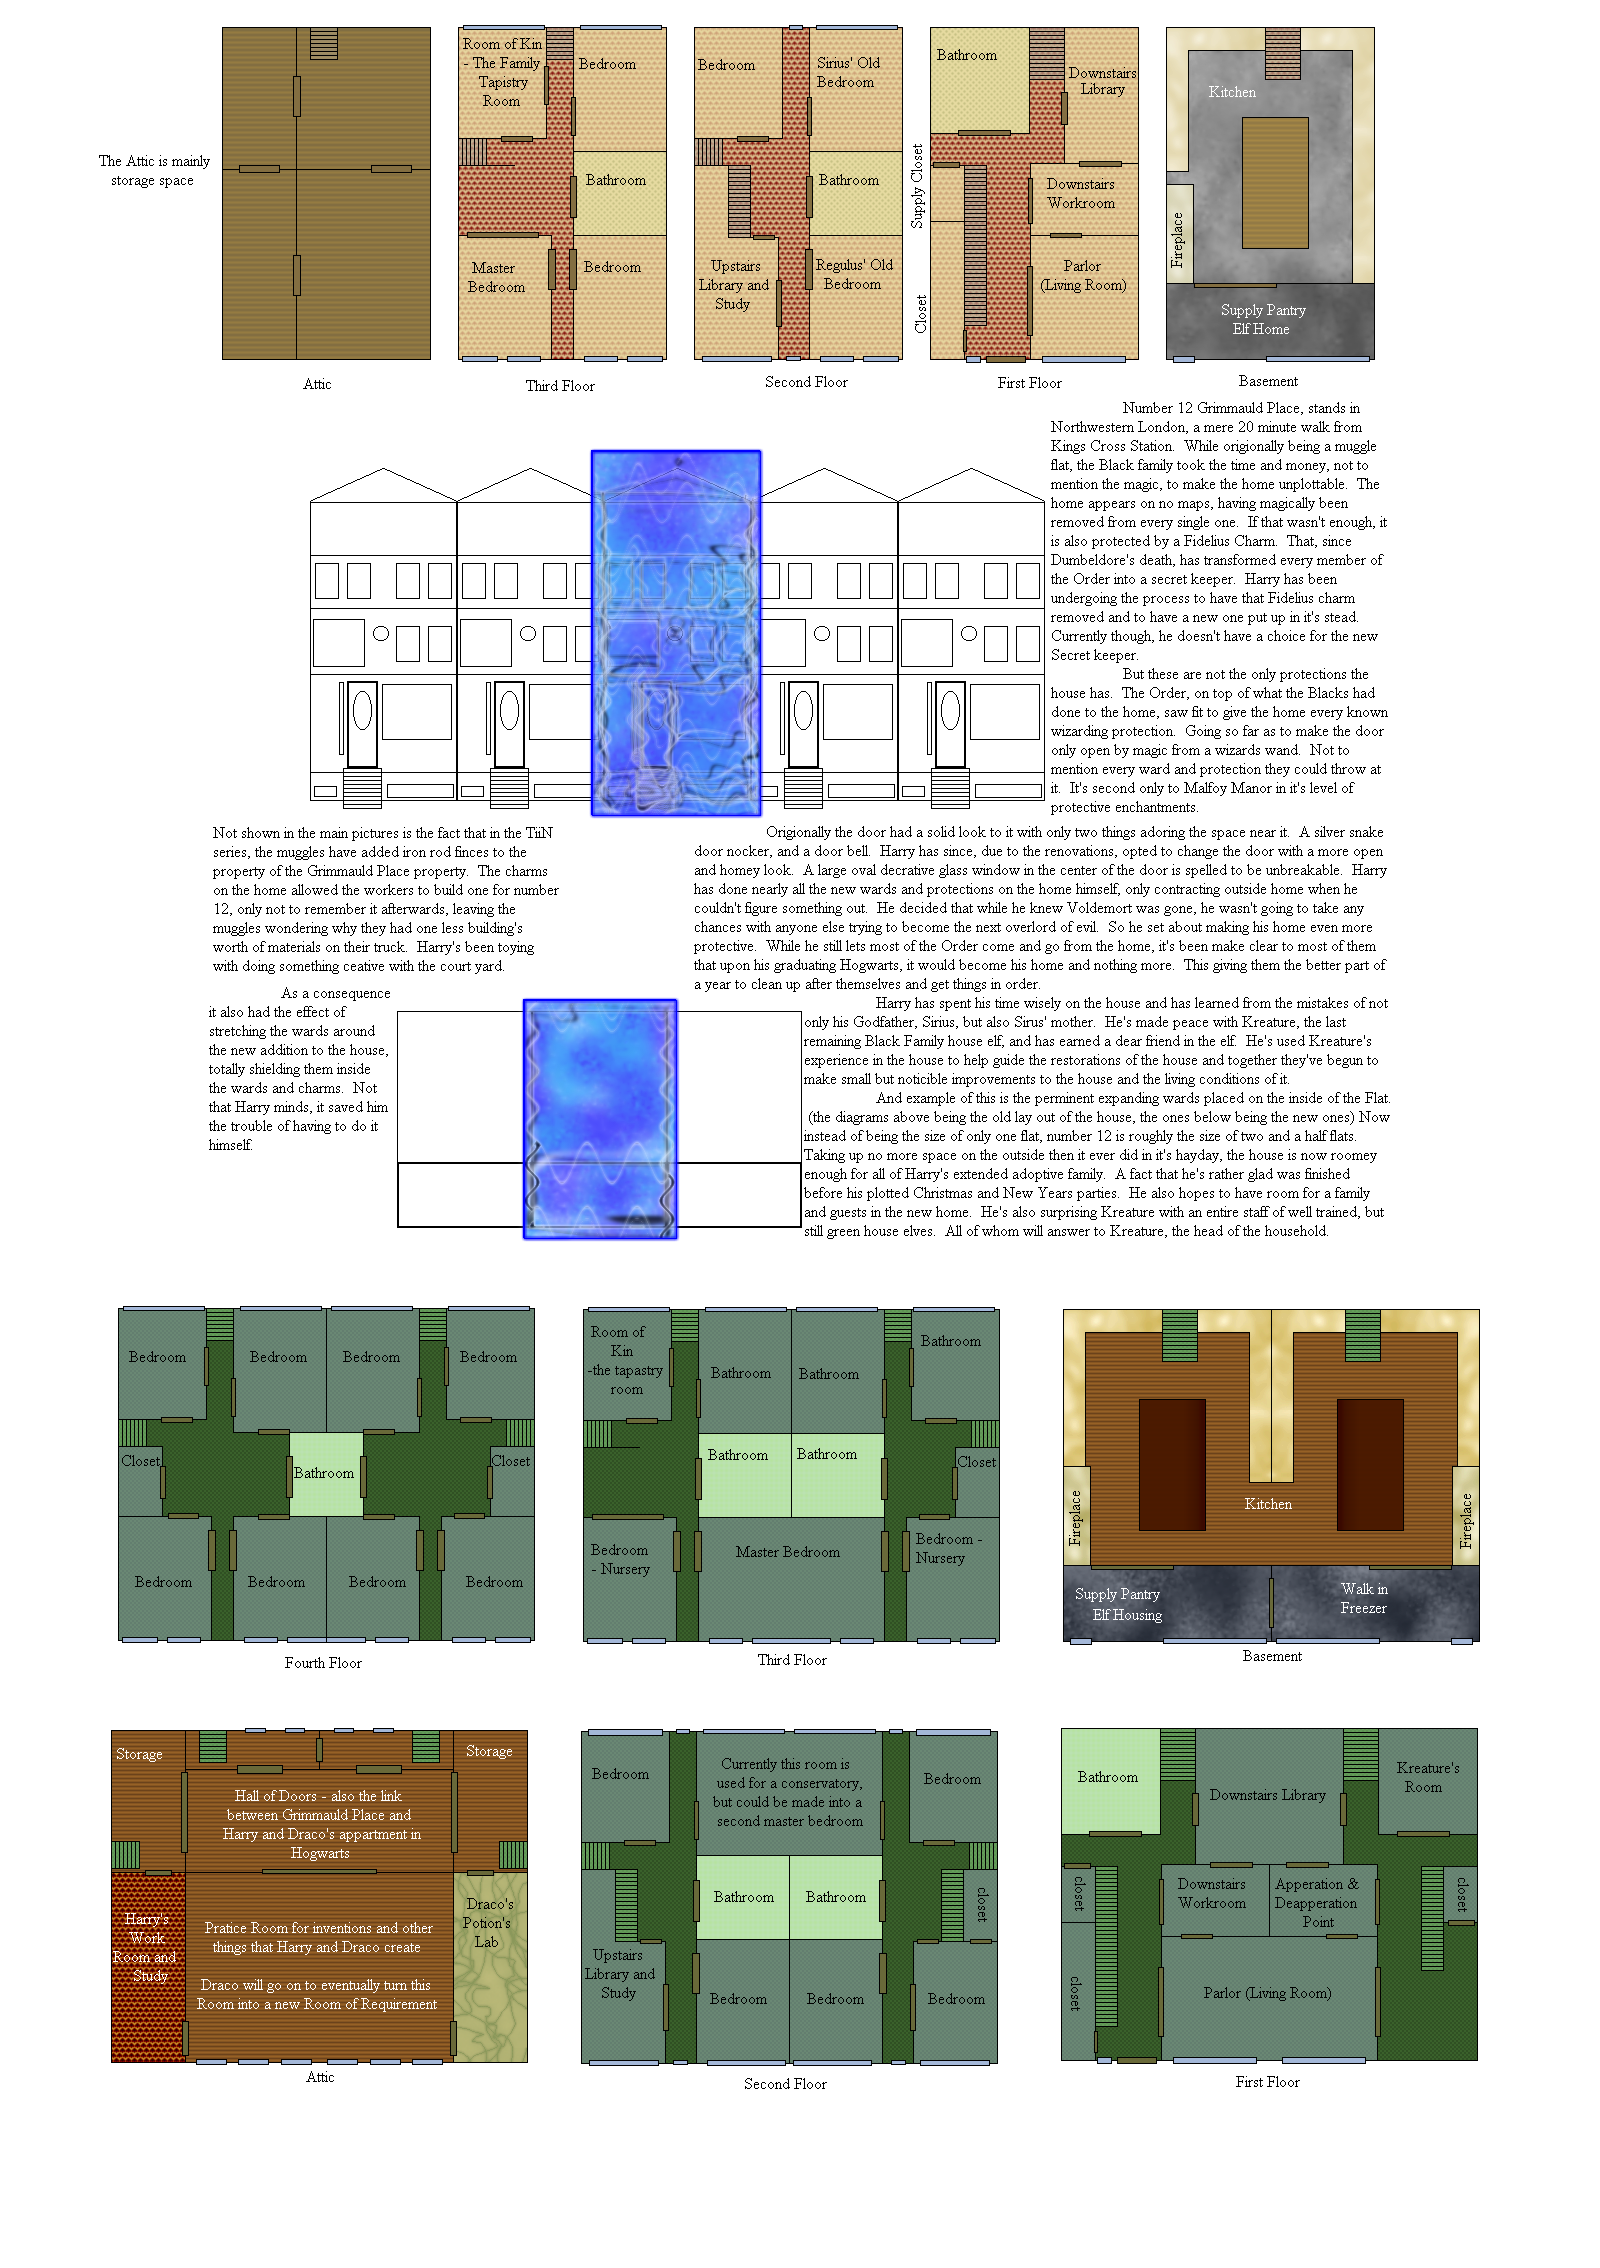 12 grimmauld place wards by notsalony on deviantart for 12 grimmauld place floor plan